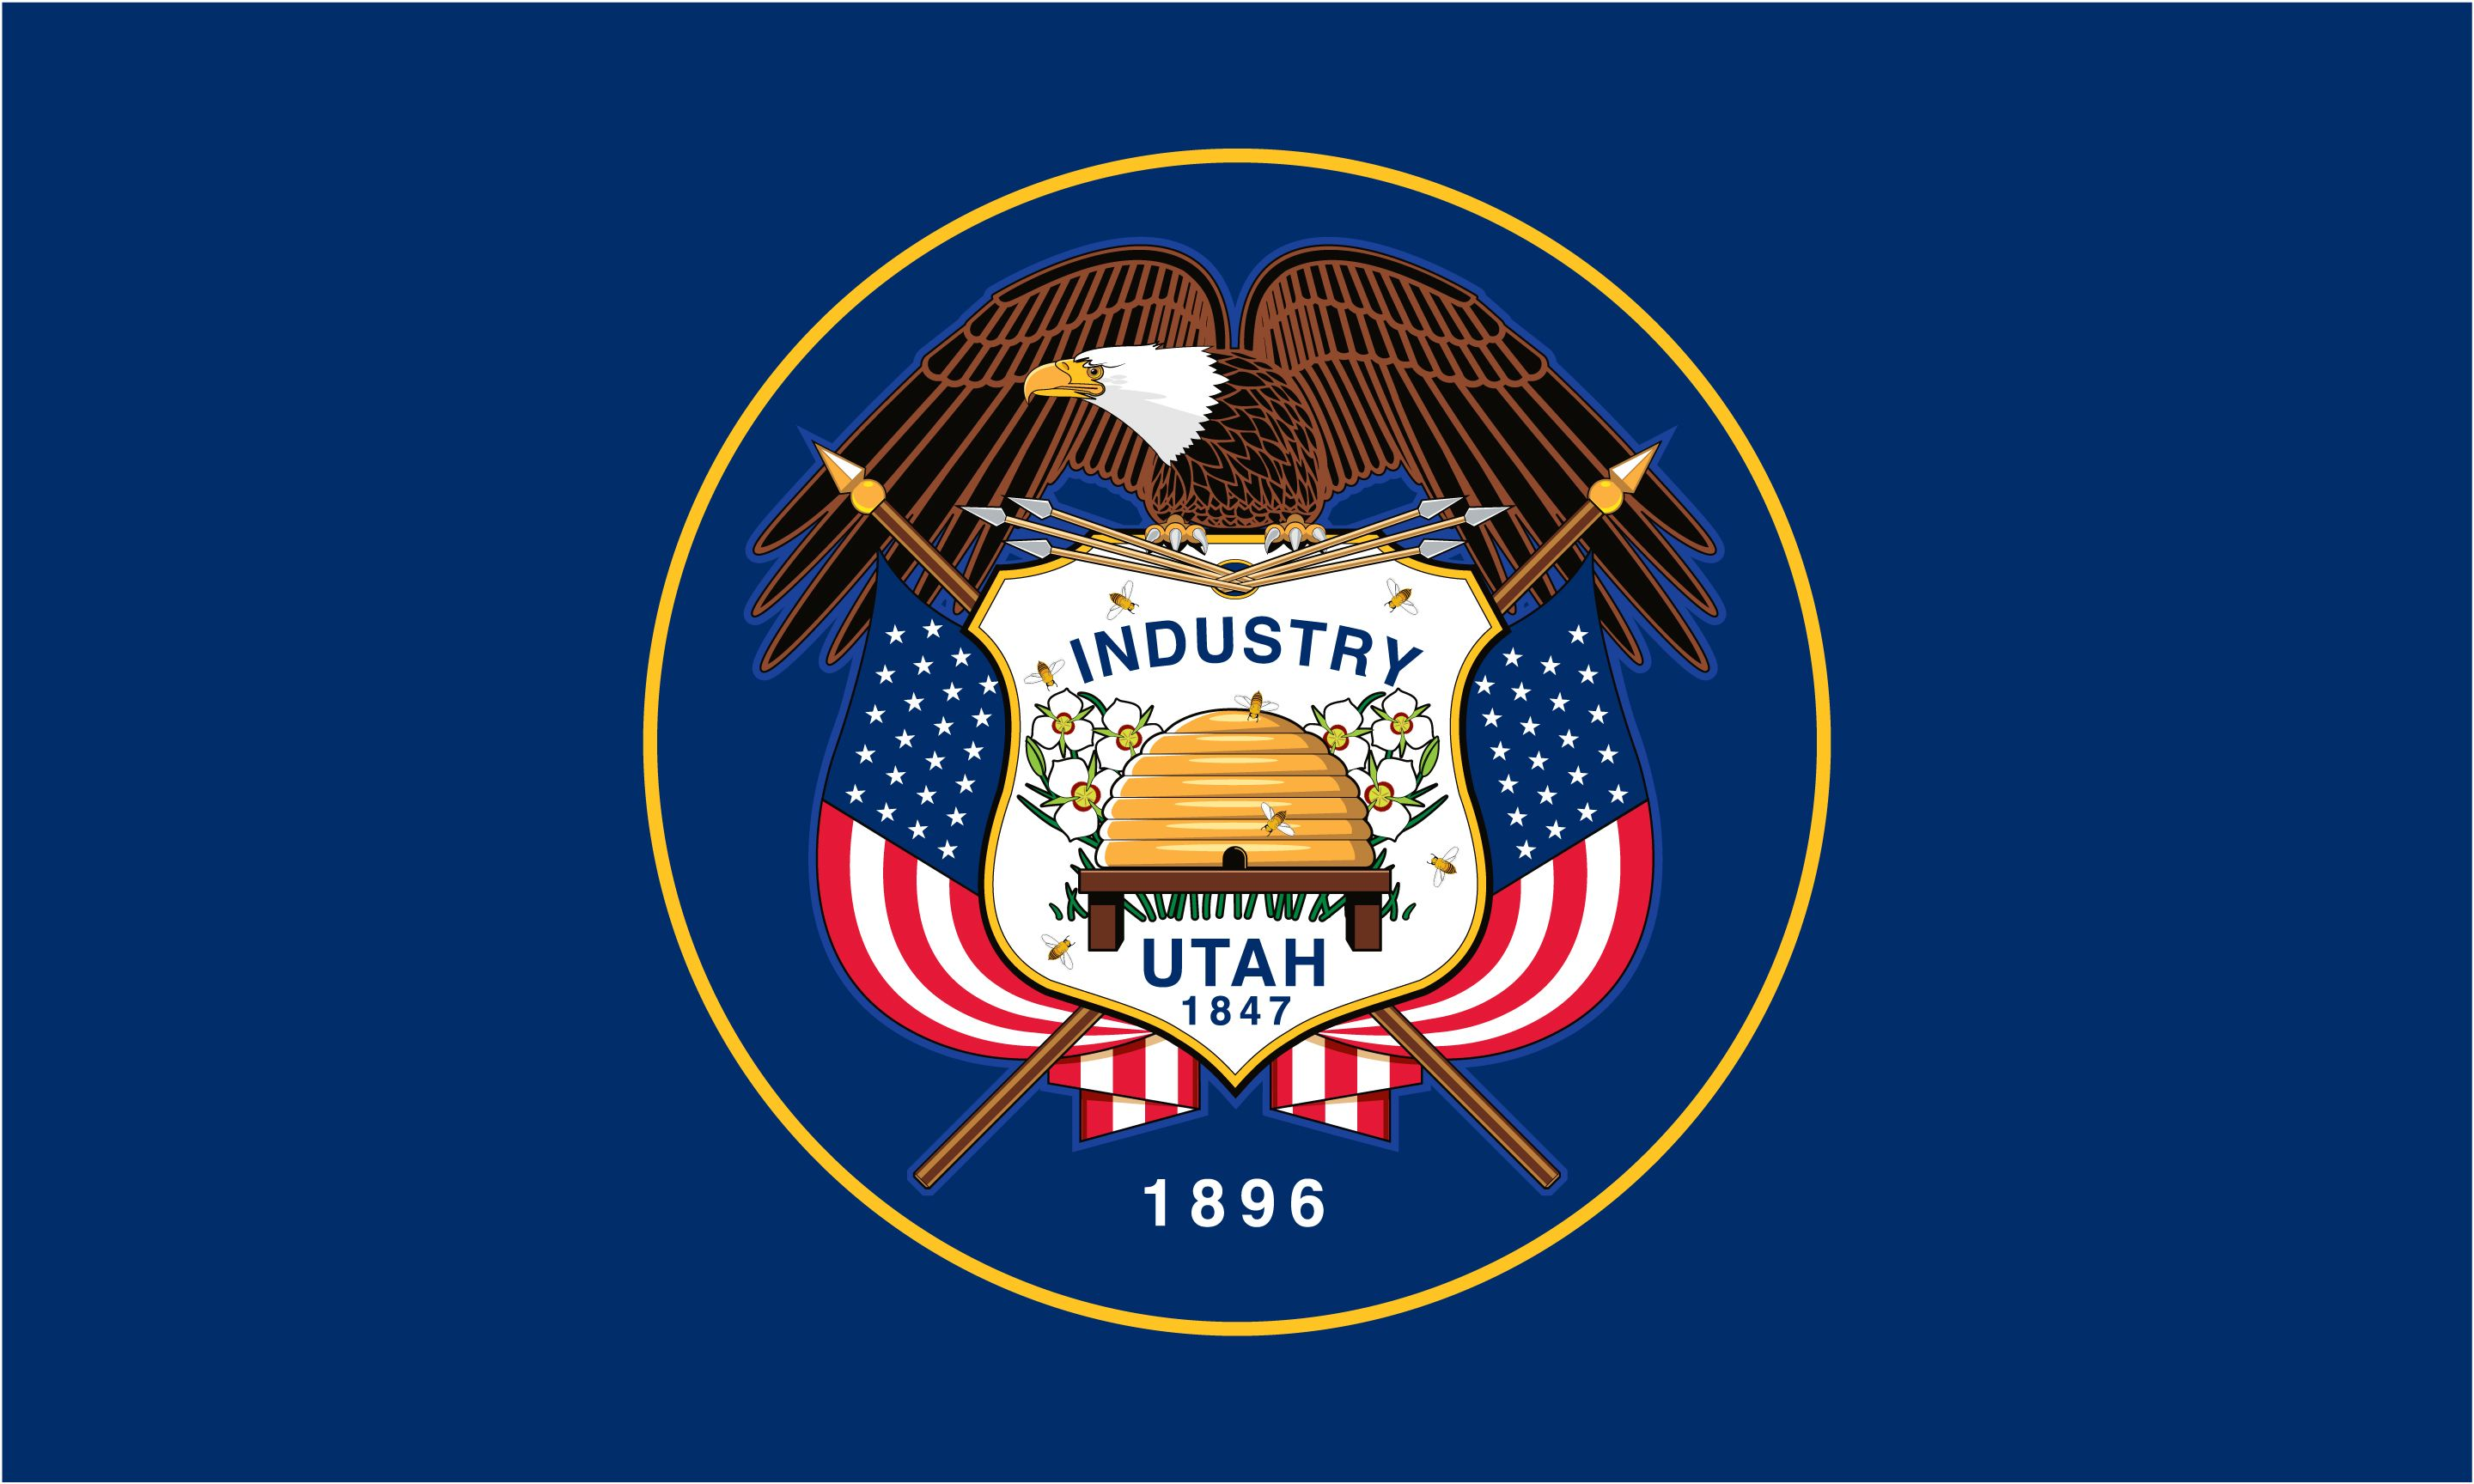 The Utah State Flag Has A Blue Background With The State Seal